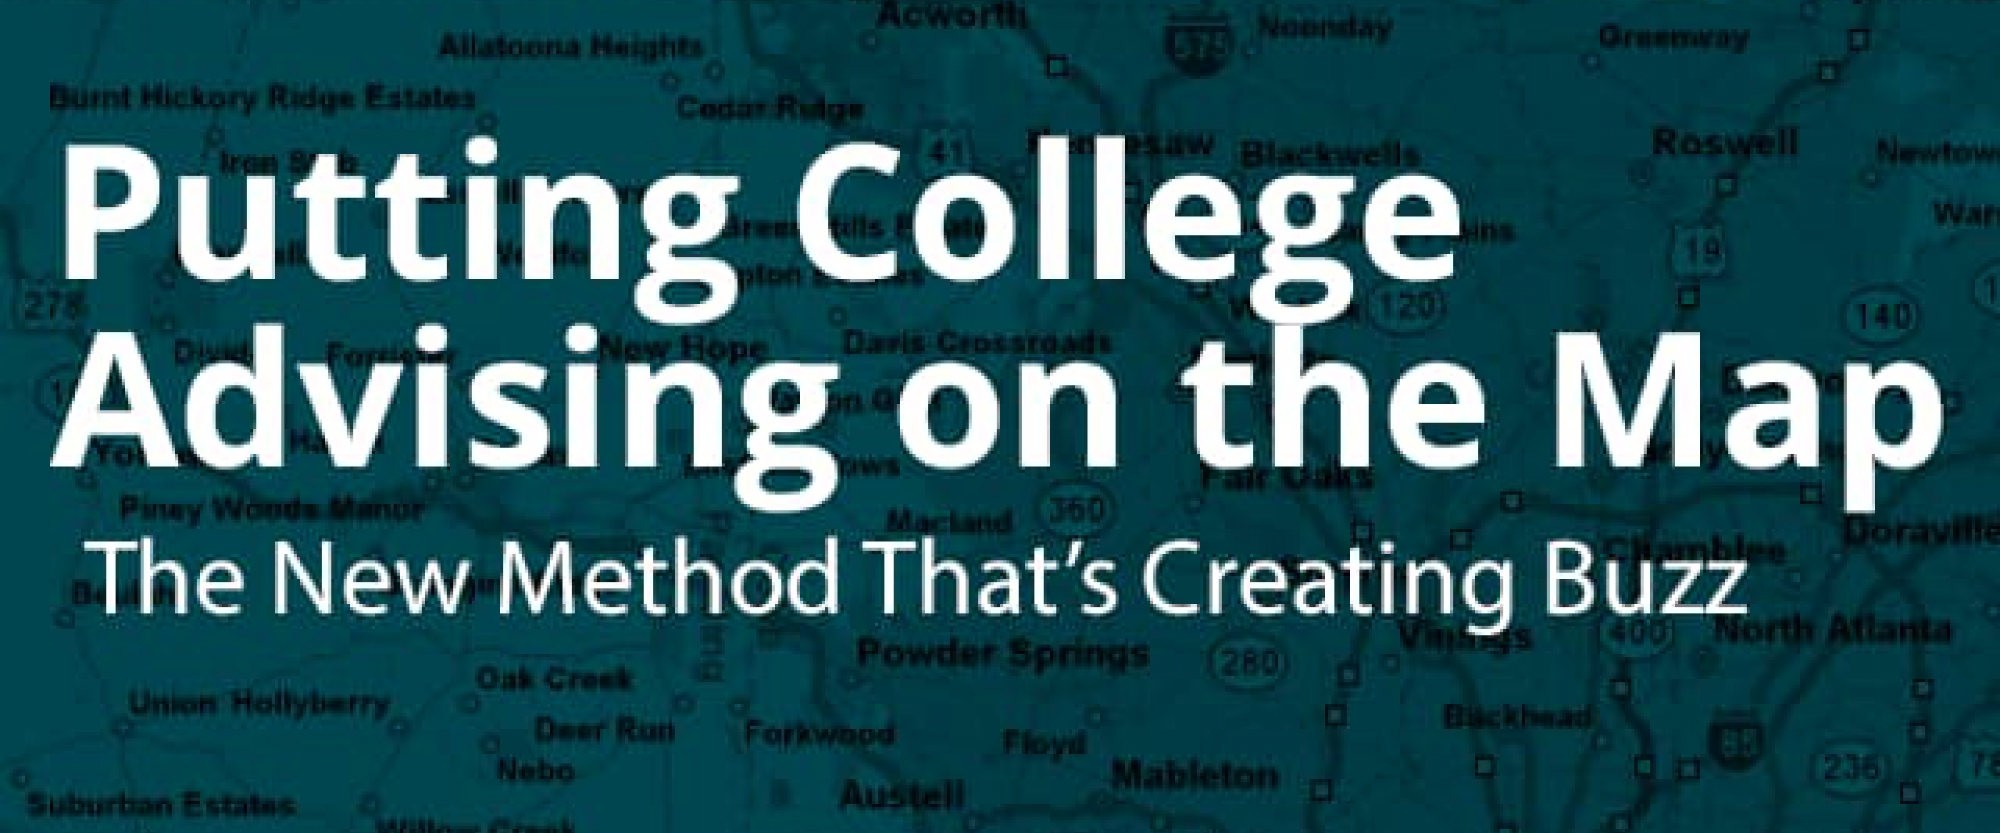 Putting College Advising on the Map: The New Methodology That's Creating Buzz